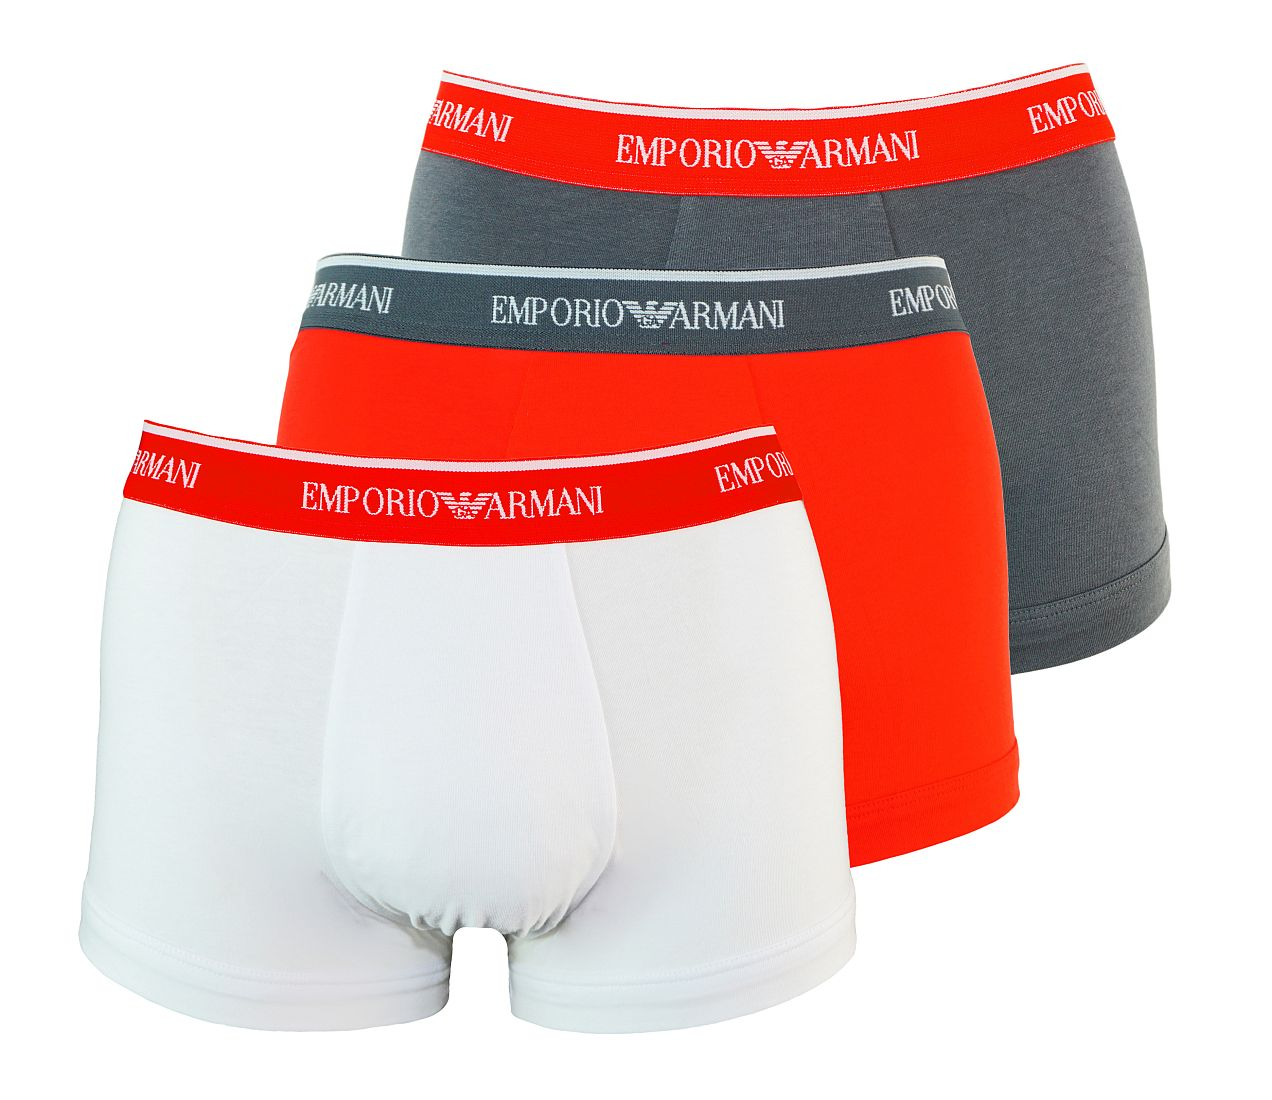 Emporio Armani 3er Pack Trunk Shorts ANTRAC/ROSSO/BIANCO 111357 7P717 17544 WF17-EAT1